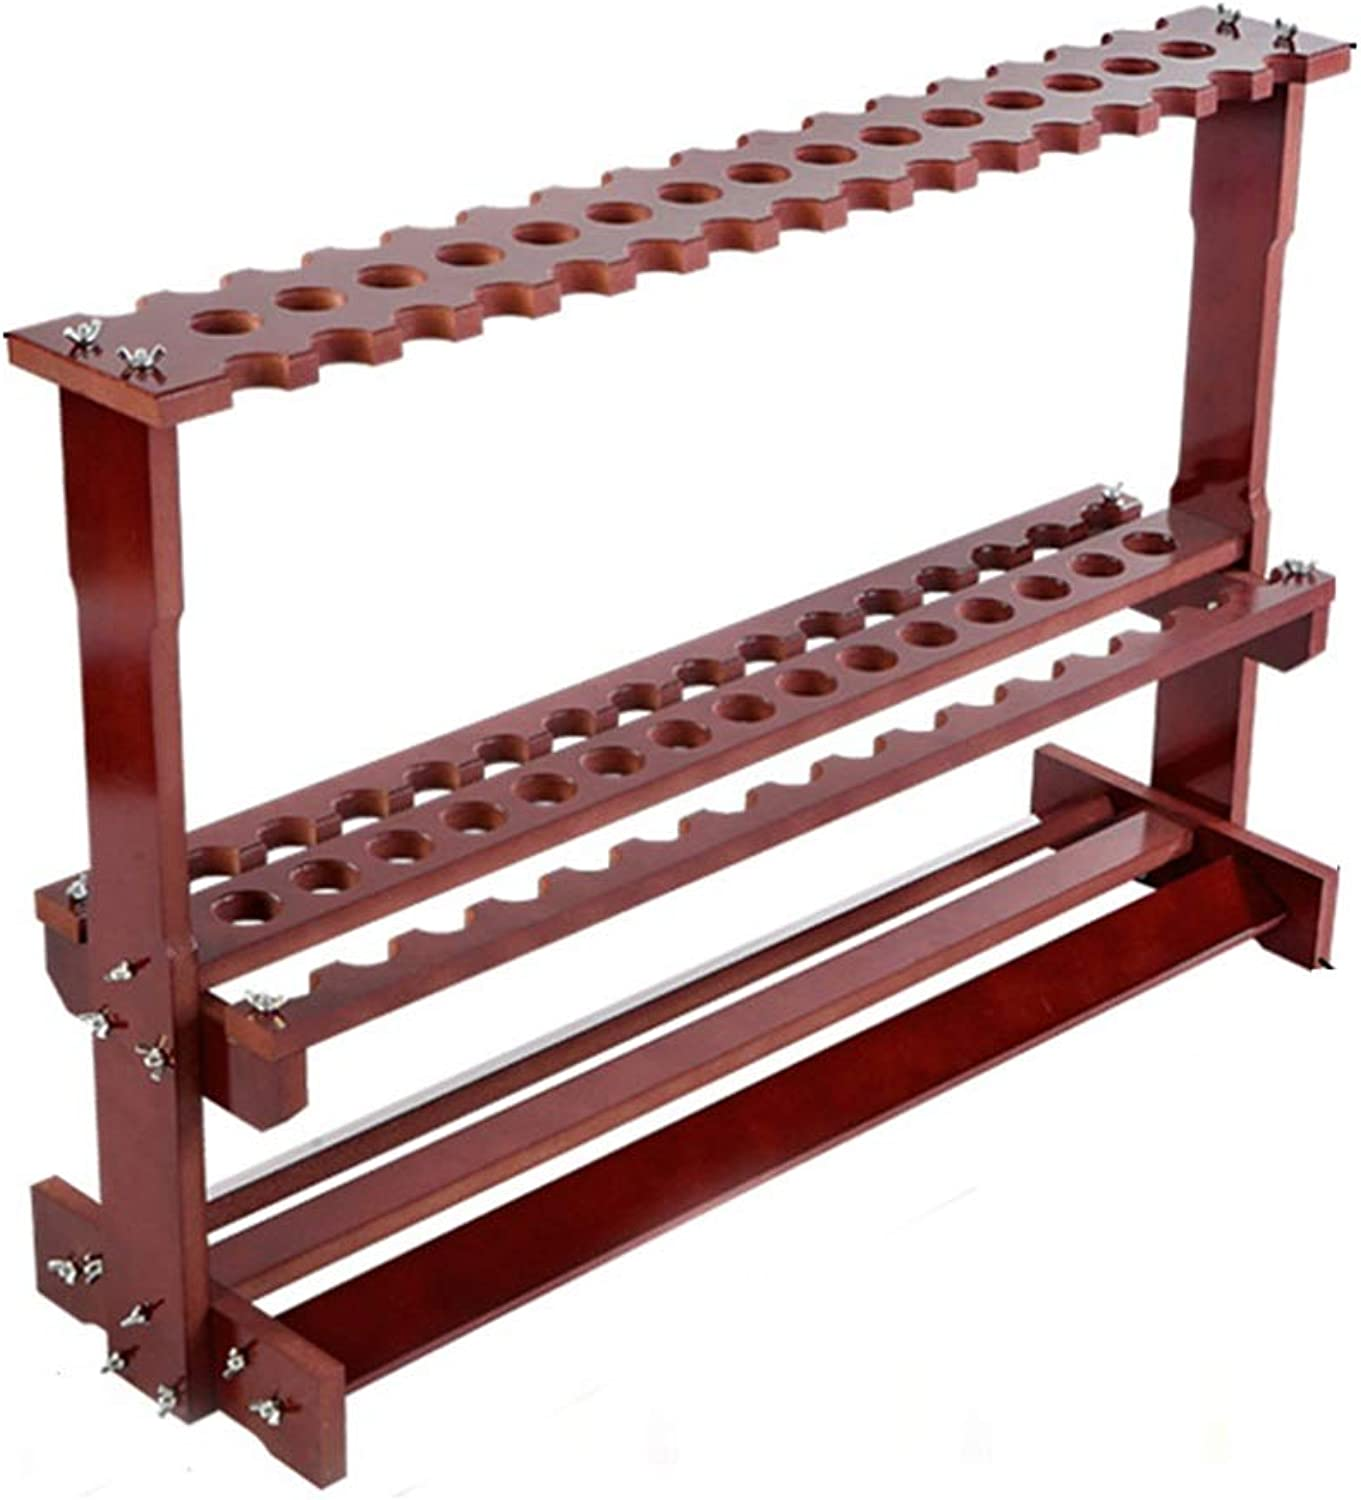 23 38 47 Fish Rod Display Stand Household Fishing Gear Storage Rack Fishing Rod Display Rack Fishing Rod Bracket (color   Brown, Size   96  28  63cm)